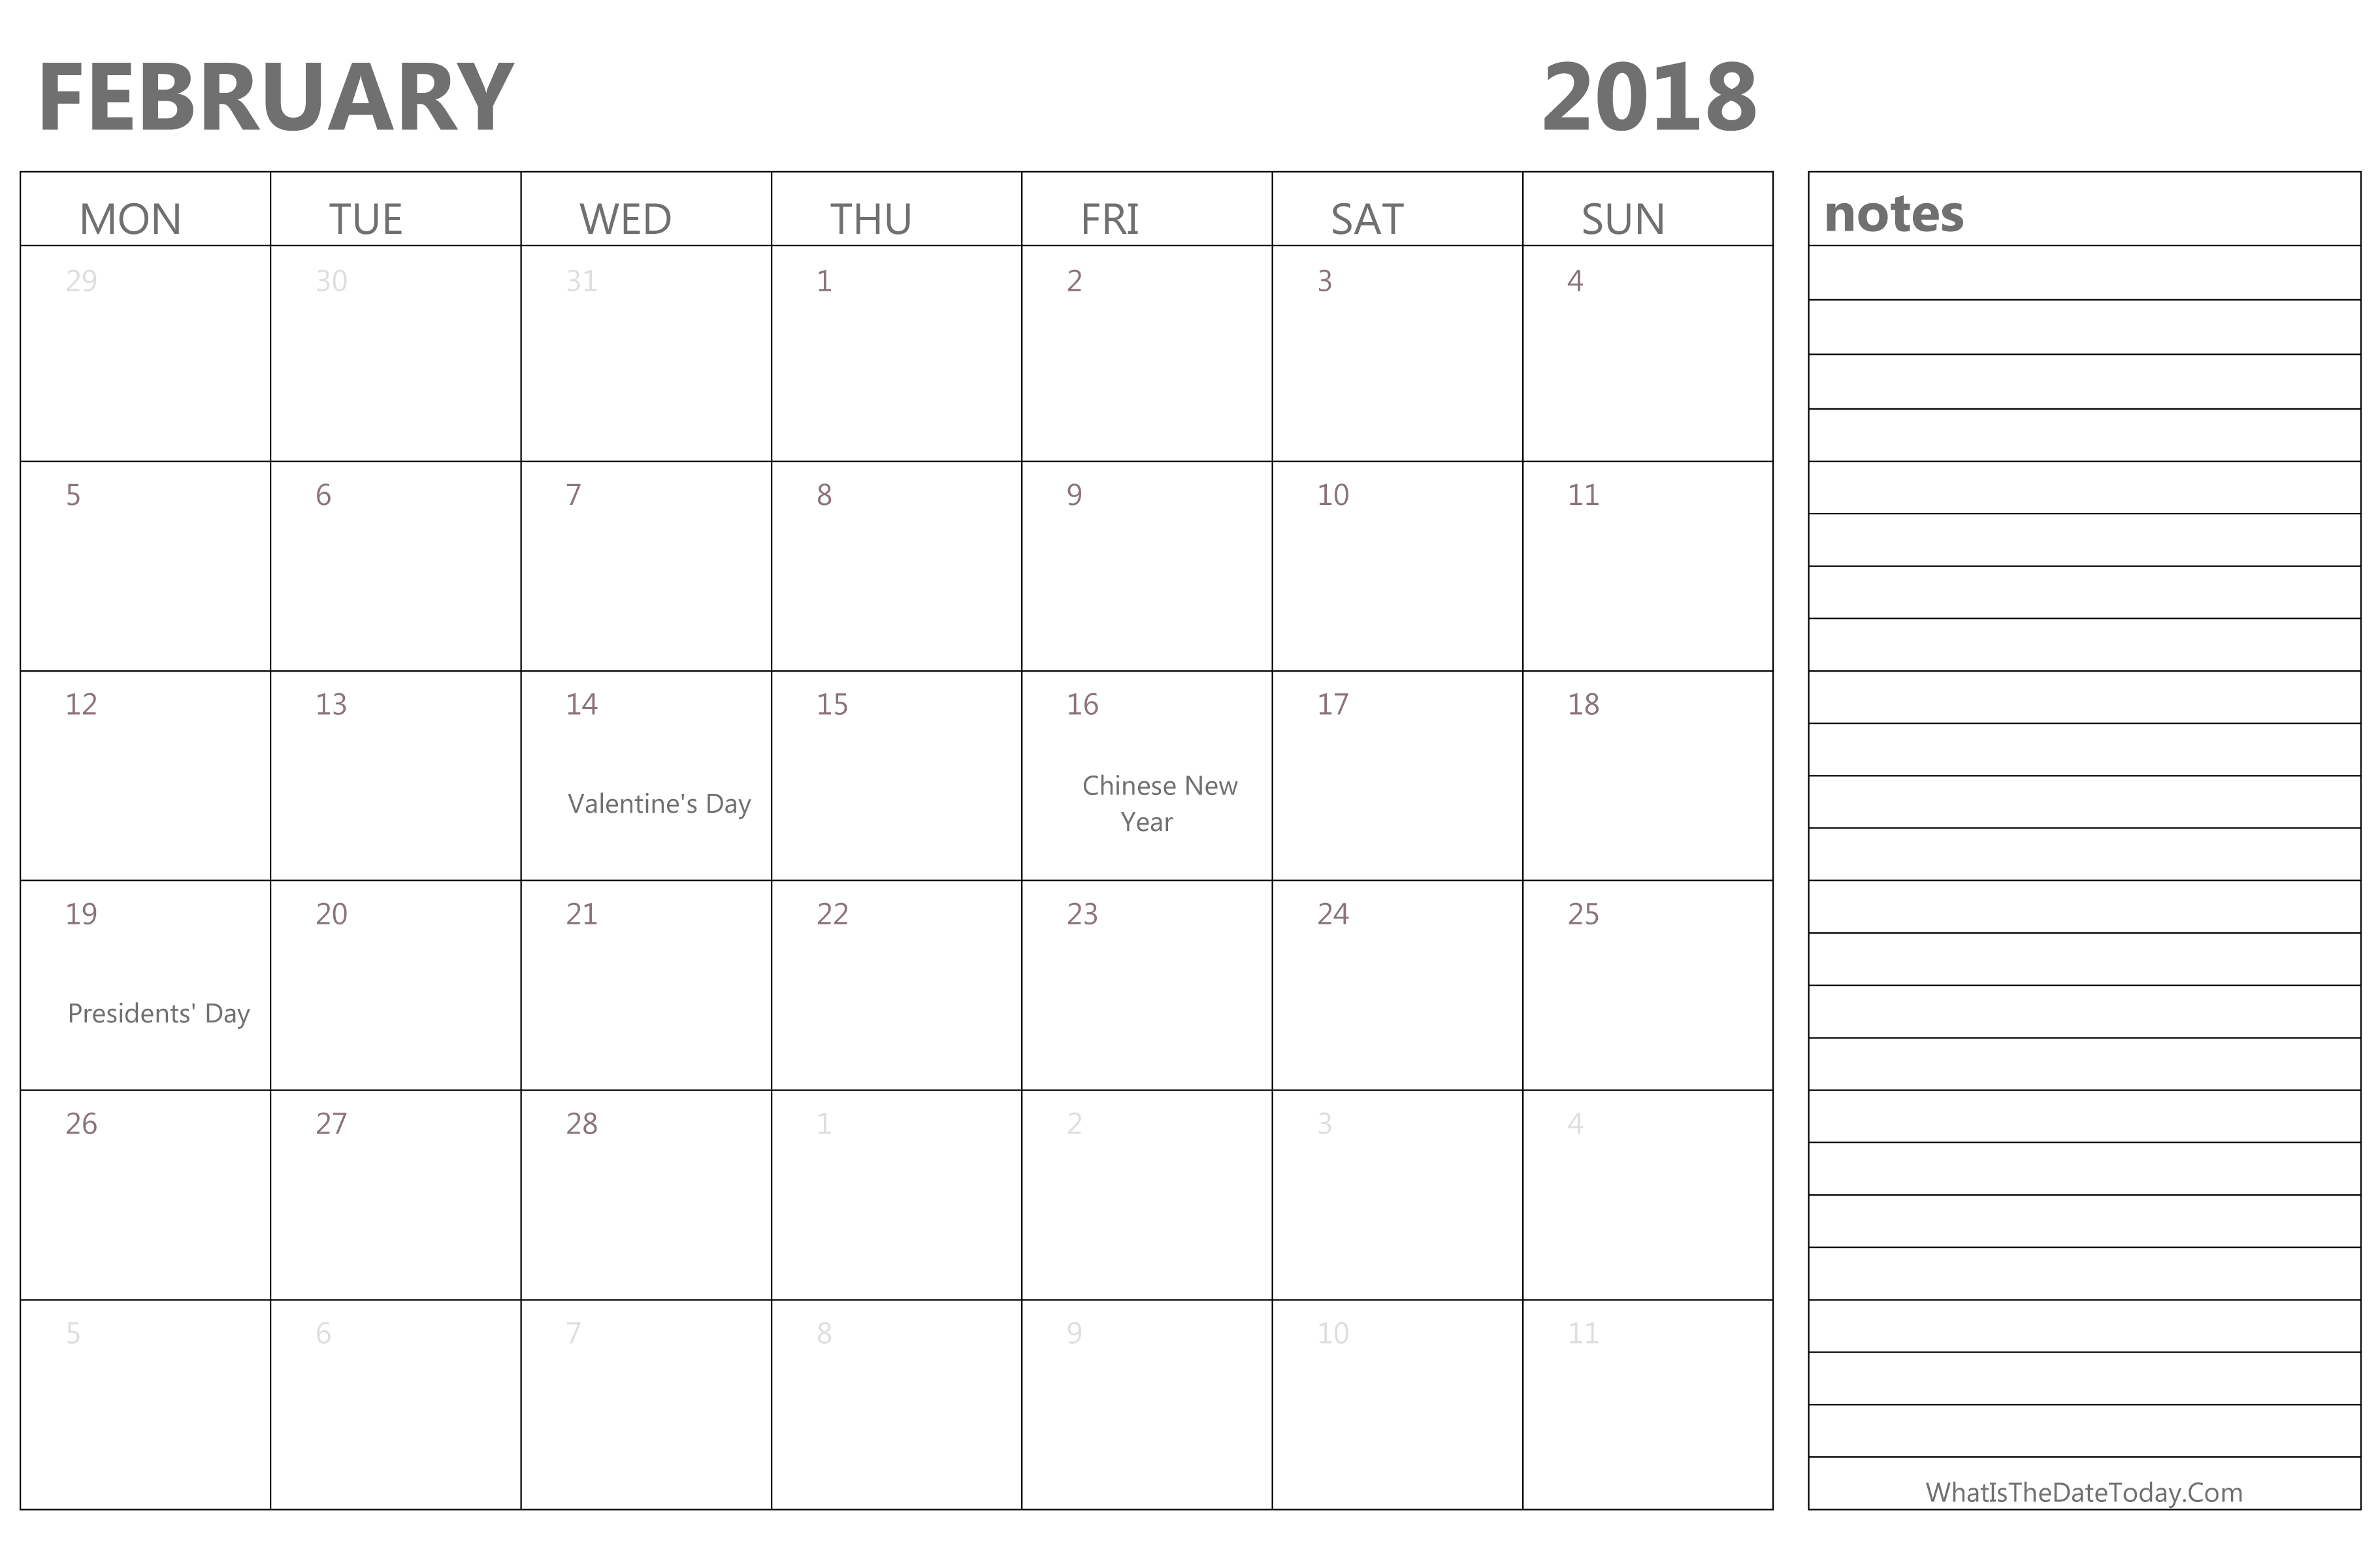 editable february 2018 calendar with holidays and notes